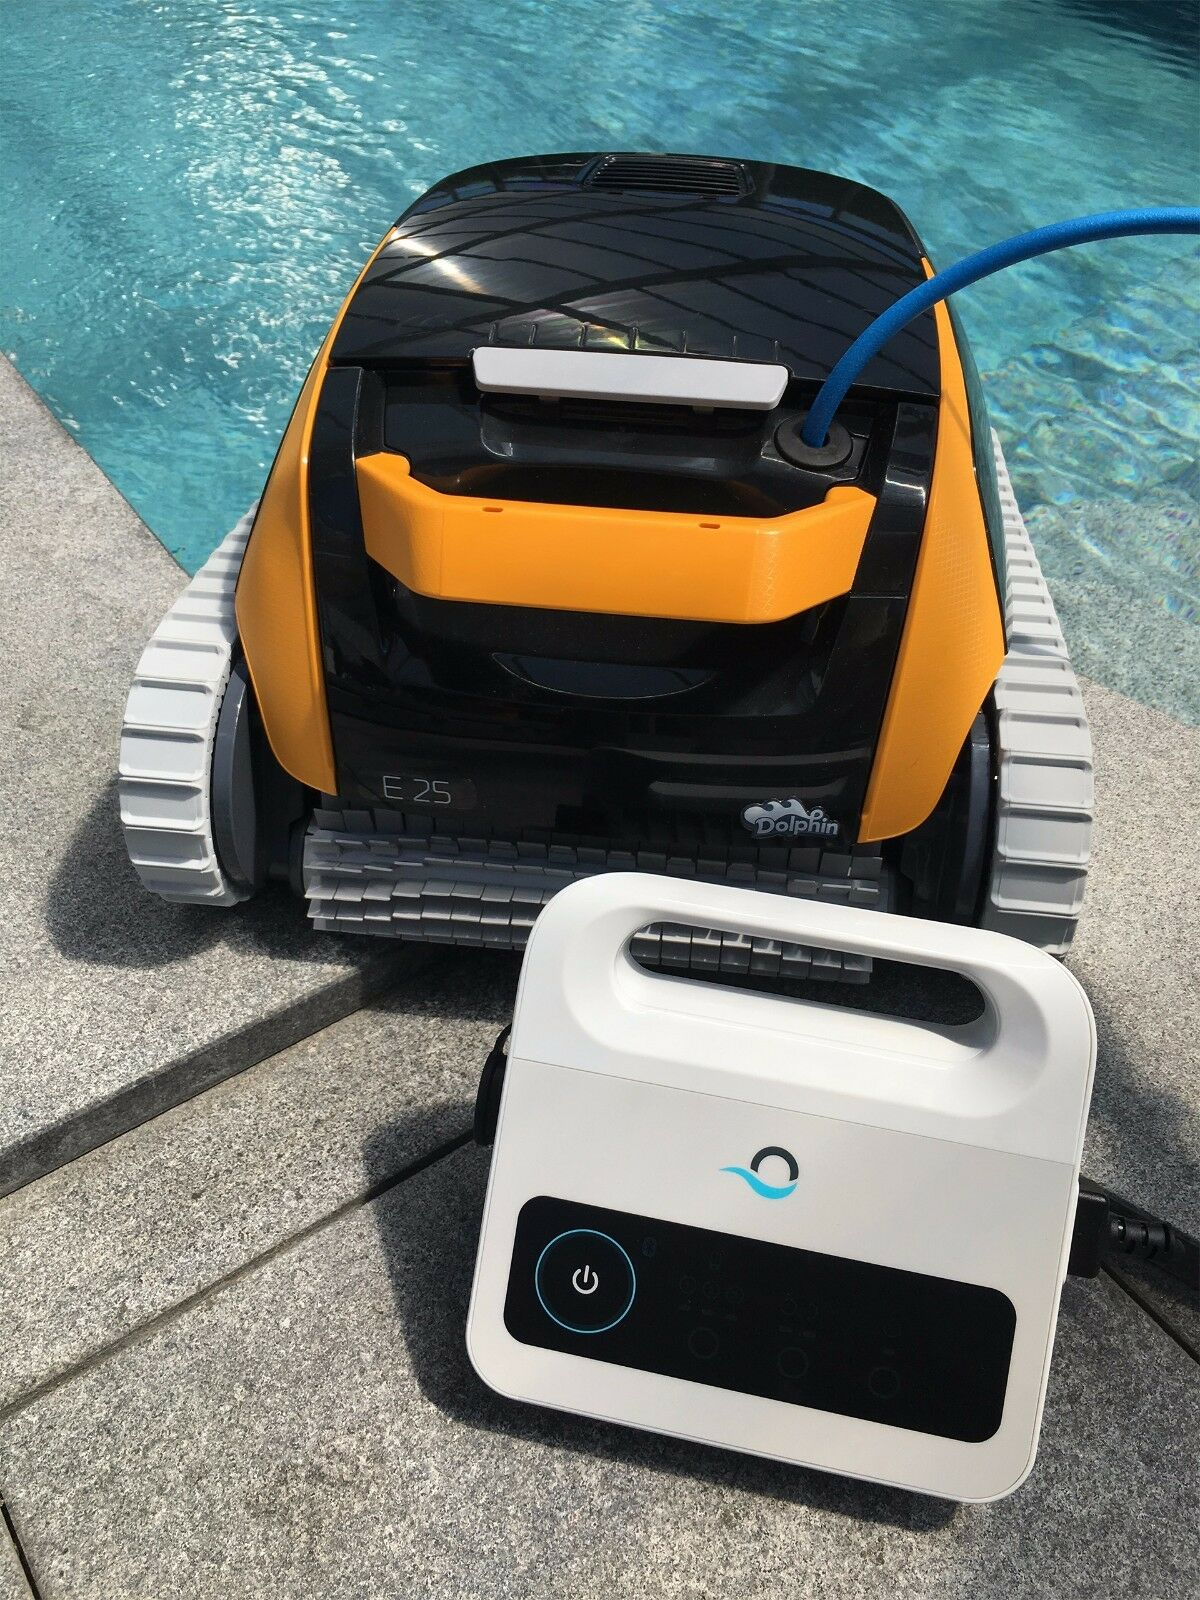 Bodensauger Pool Roboter Poolroboter Mehr Als 1000 Angebote Fotos Preise Seite 3